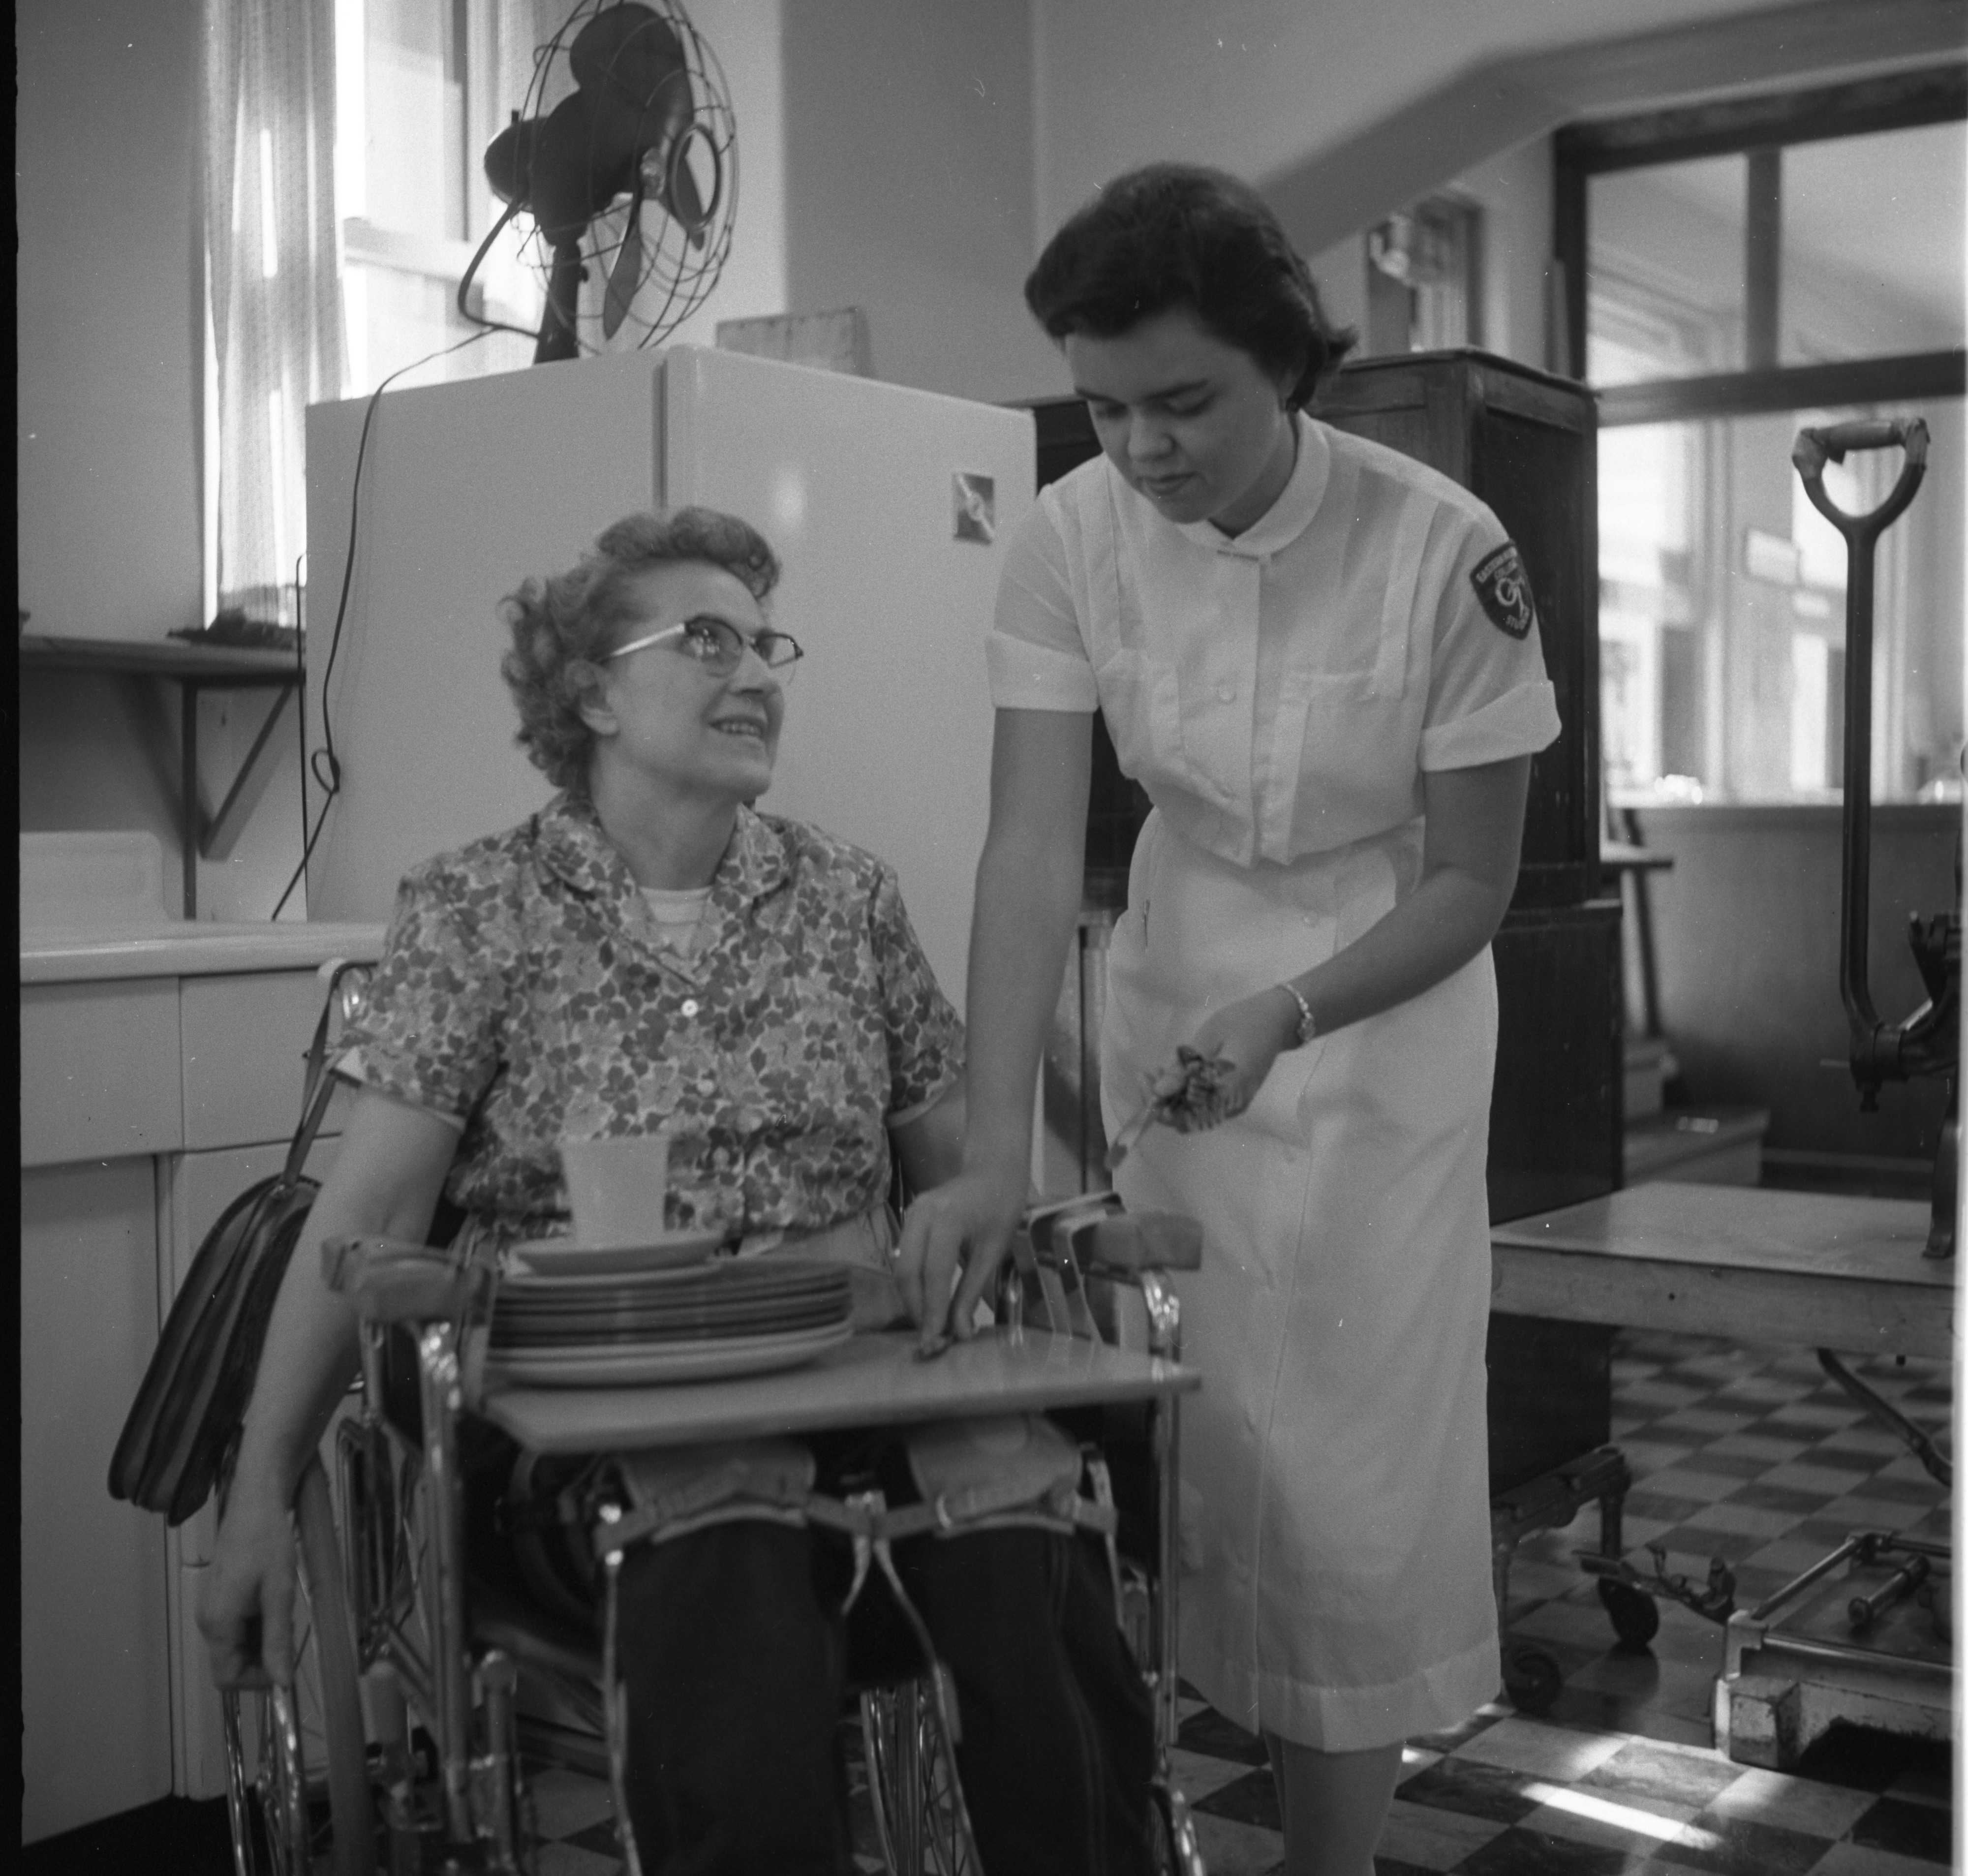 Handicapped Homemaker Olive Stone Learns Adaptive Housekeeping Skills at University Hospital, September 1958 image